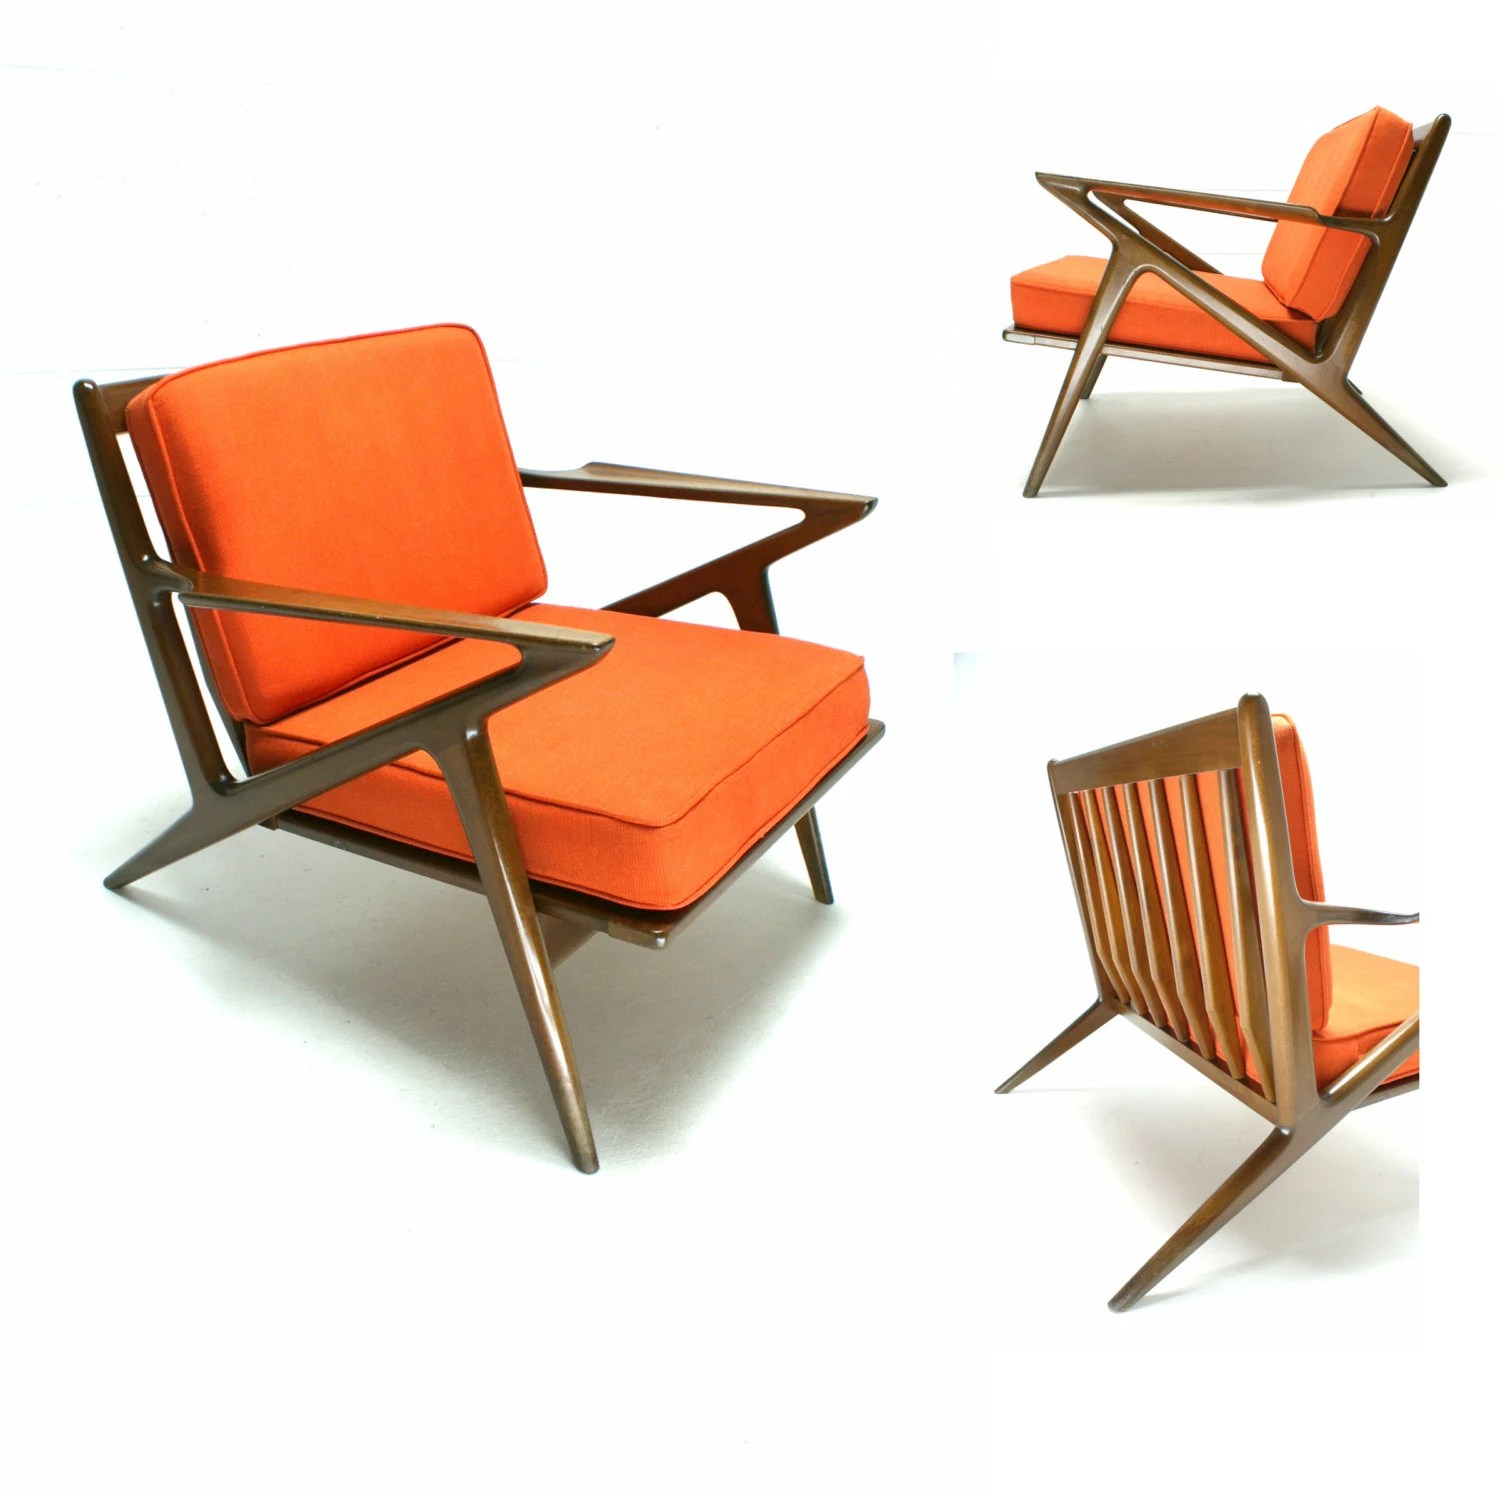 z chair mid century 4 patio set the 60s modern danish selig poul jensen